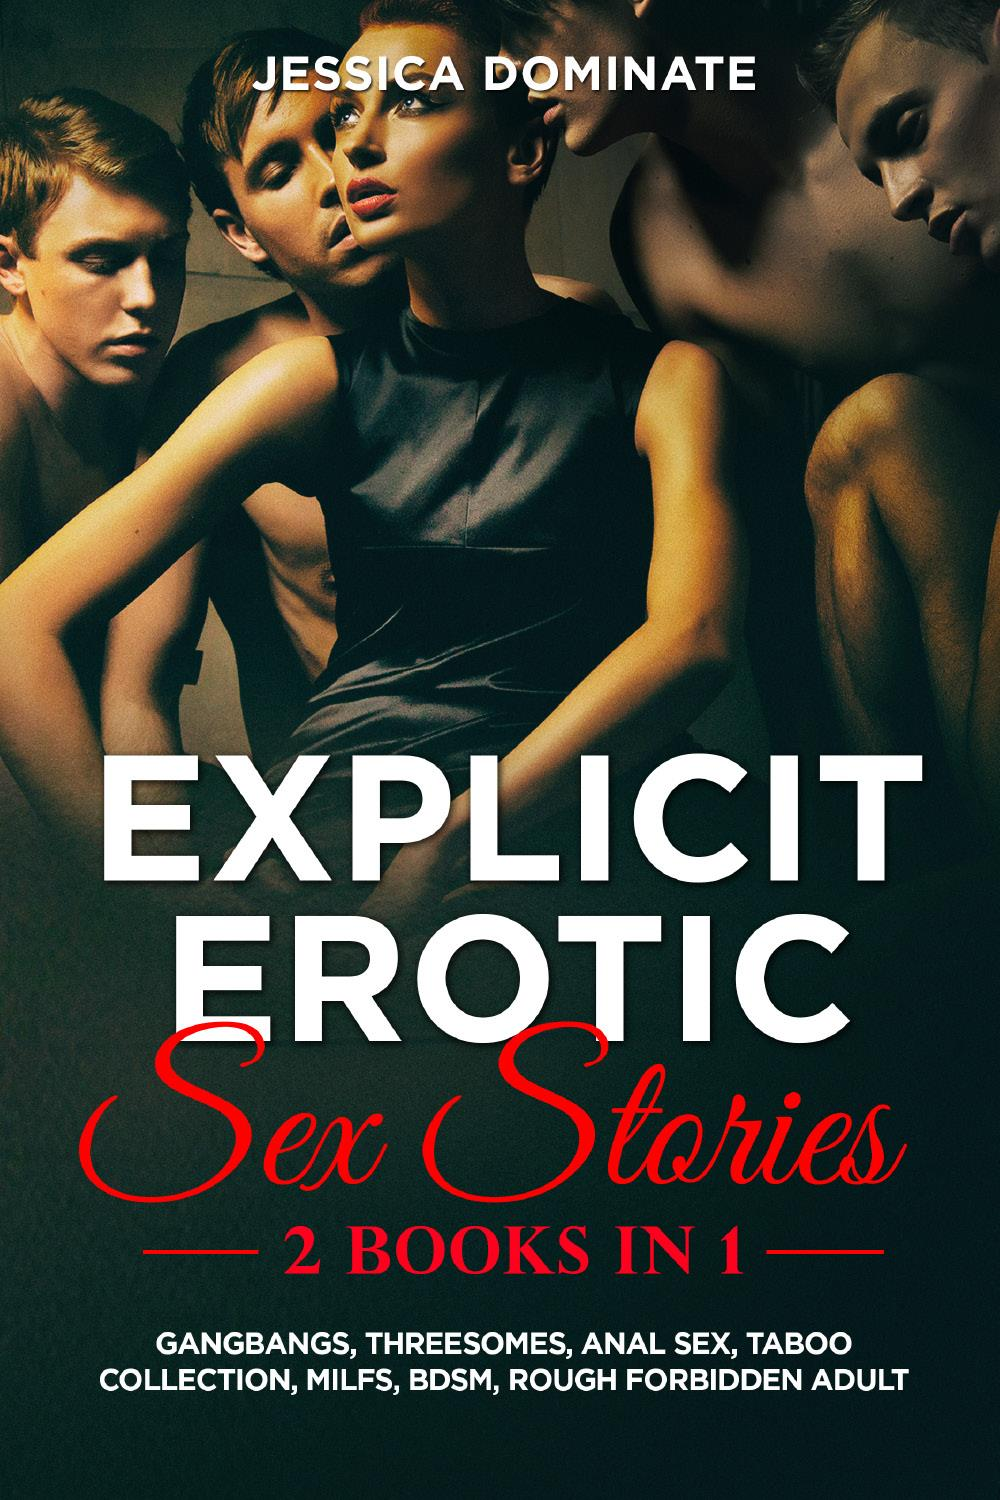 Explicit Erotic Sex Stories (2 Books in 1). Gangbangs, Threesomes, Anal Sex, Taboo Collection, MILFs, BDSM, Rough Forbidden Adult